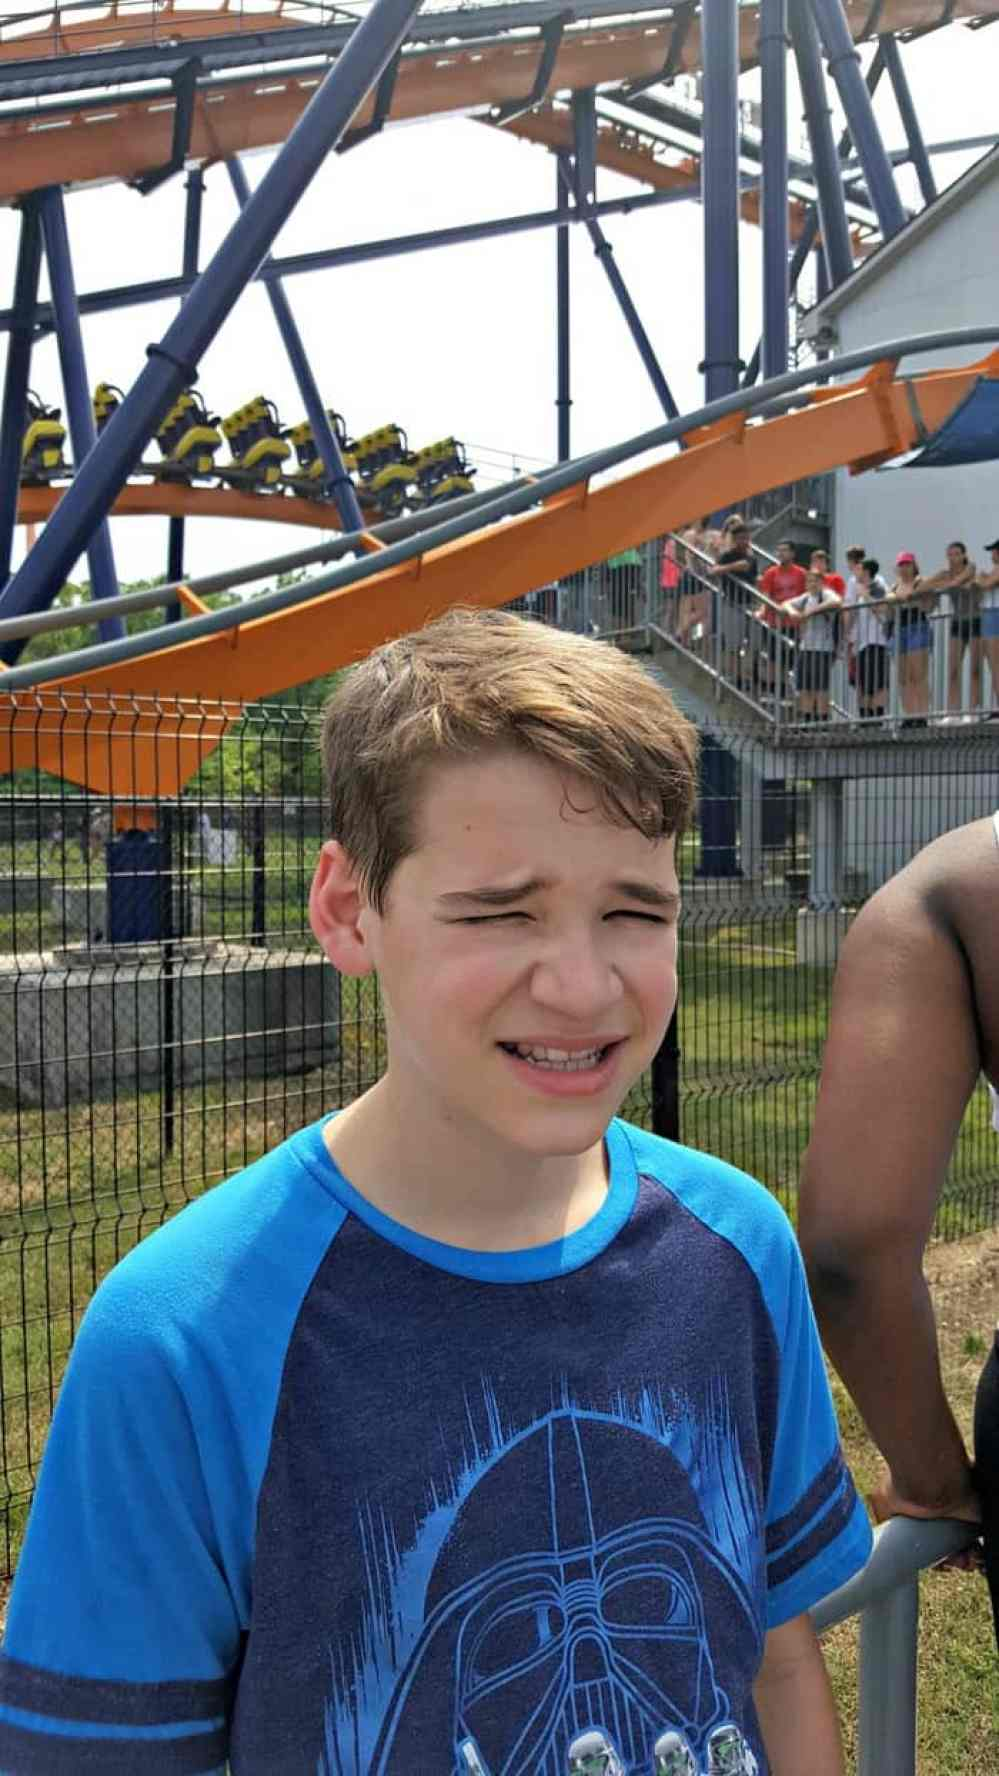 in line at the dominator at Kings dominion